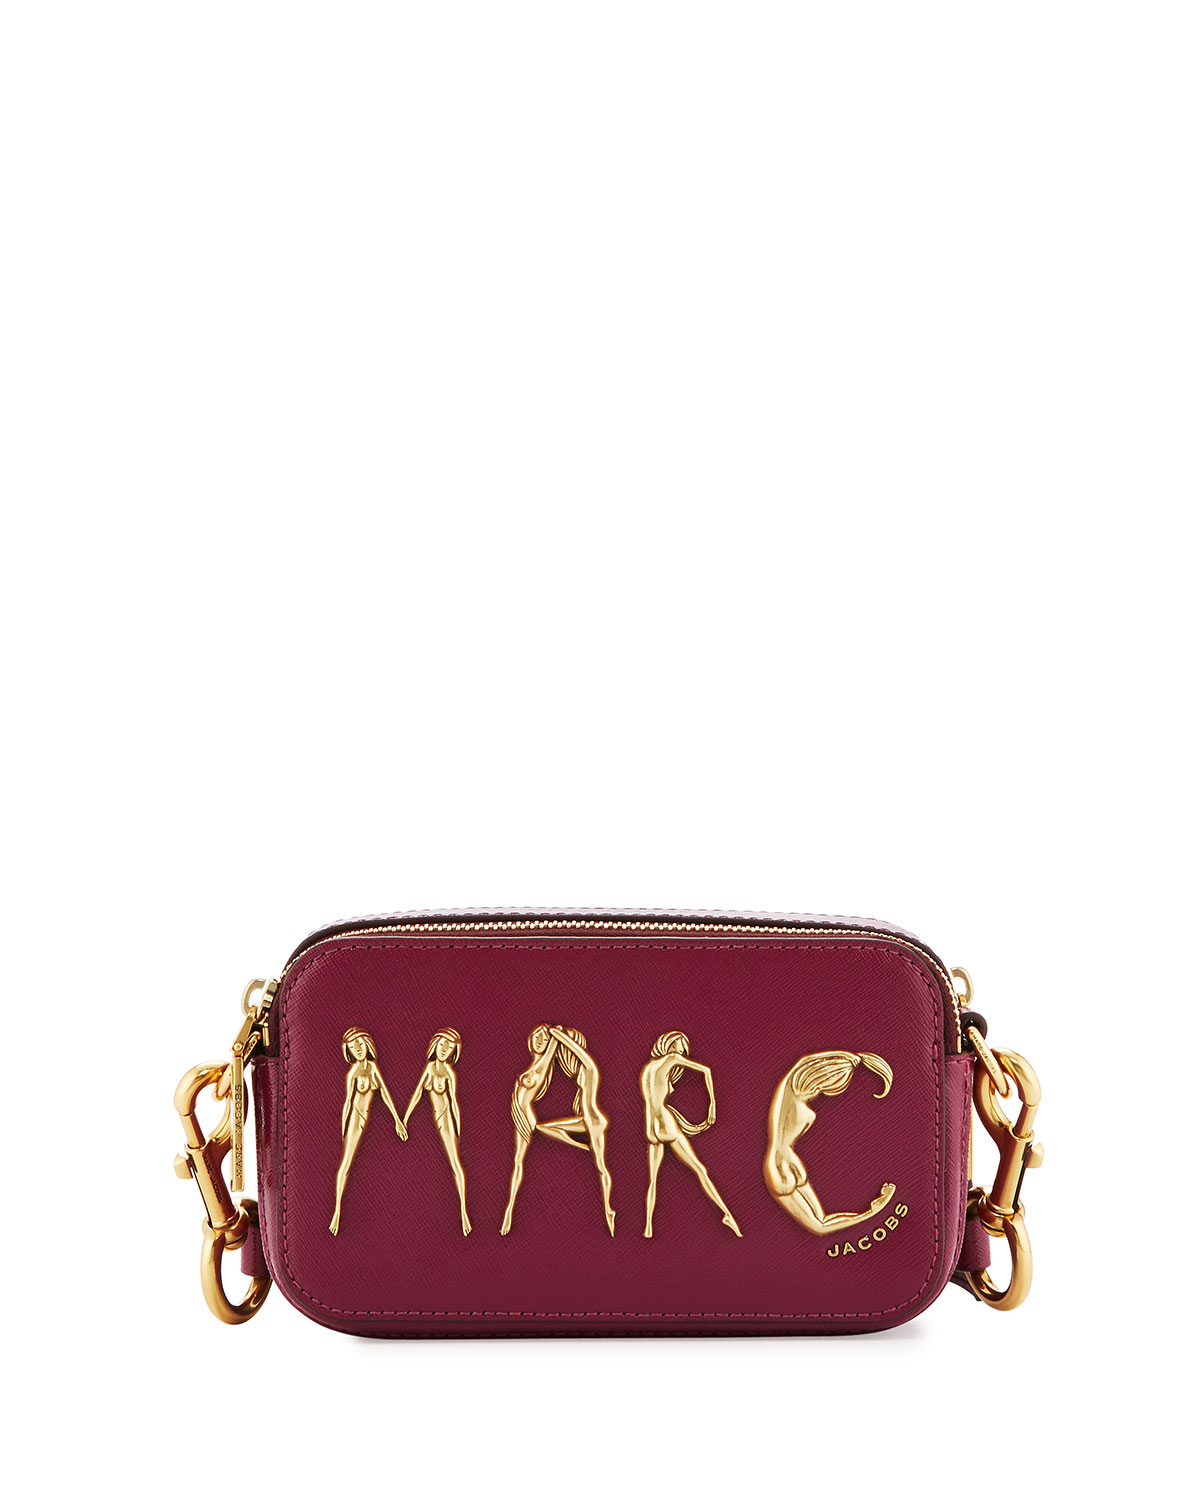 86ad7889708a Marc Jacobs Snapshot Flashed Leather Camera Bag